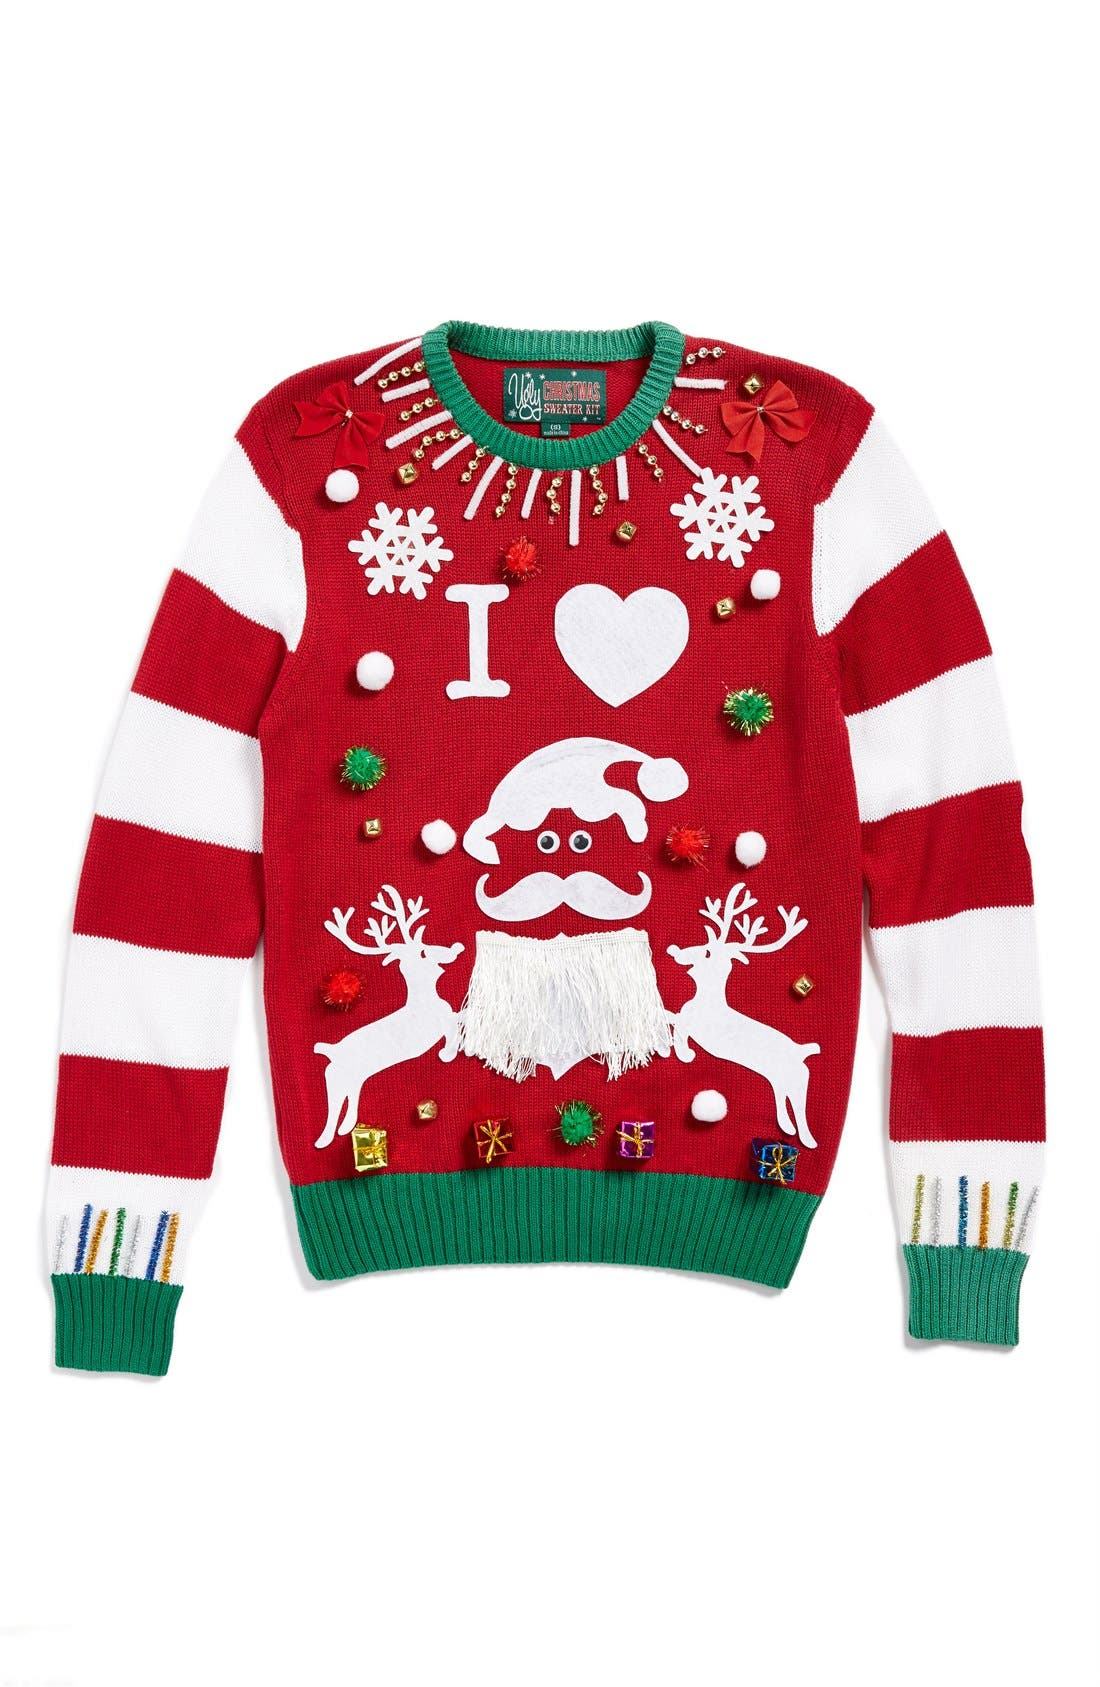 Main Image - Ugly Christmas Sweater 'Make Your Own - Red Stripe' Sweater Kit